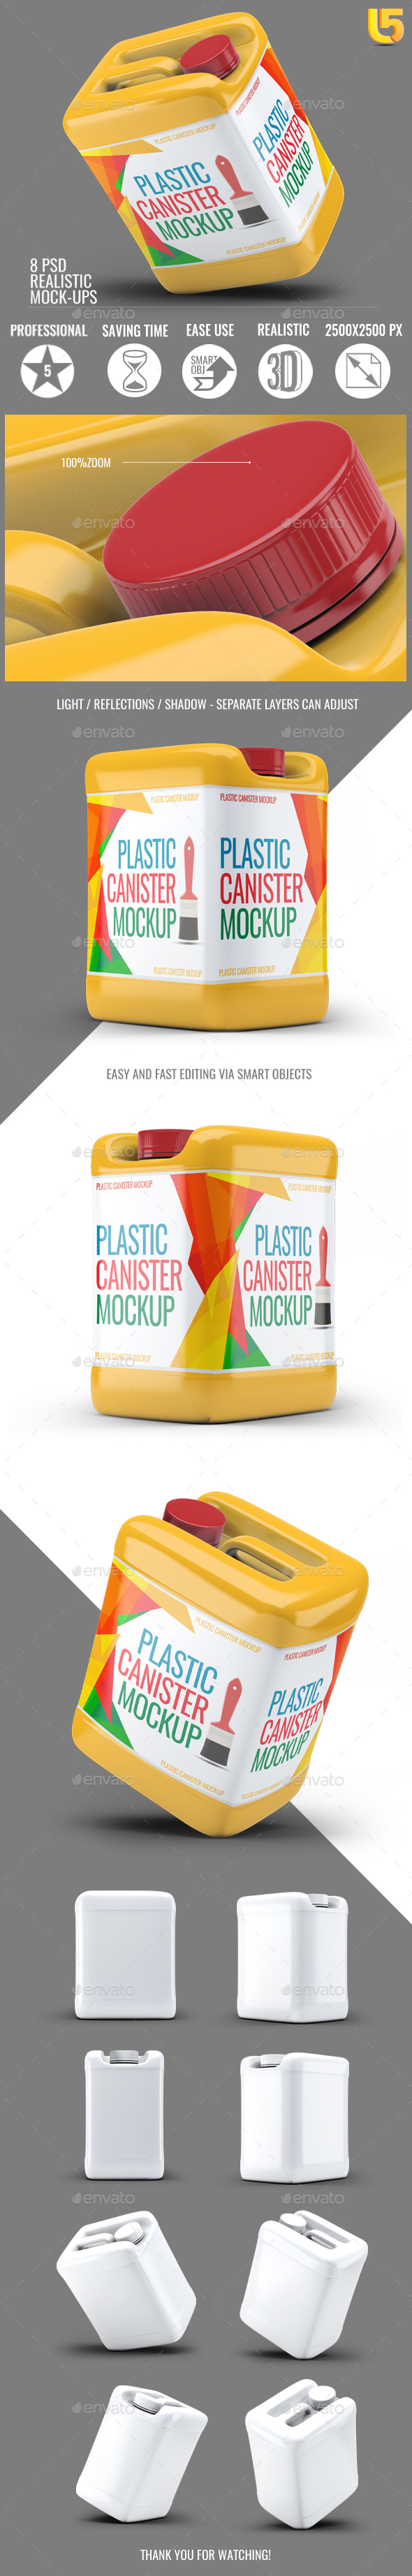 GraphicRiver Plastic Canister Mock-Up 21074422